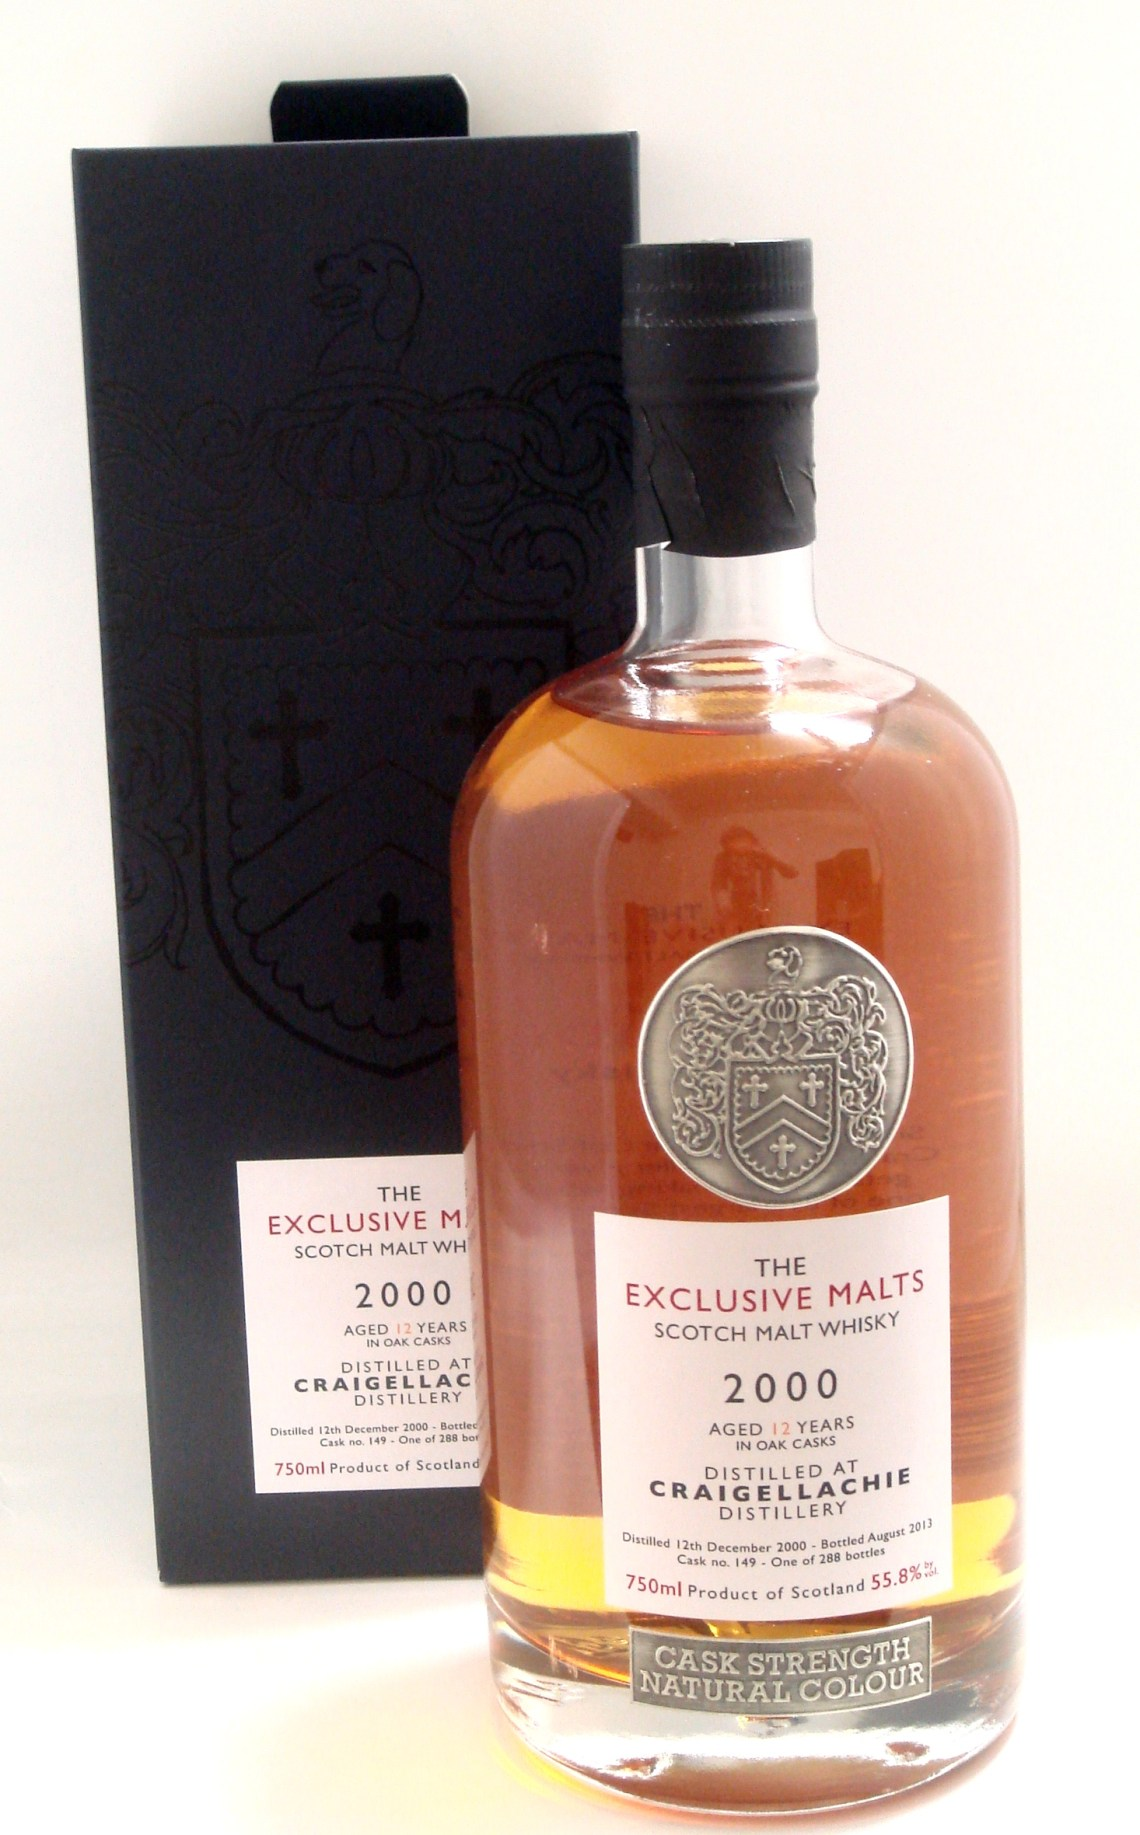 The Exclusive Malts Craigellachie 2000 12 Years Old